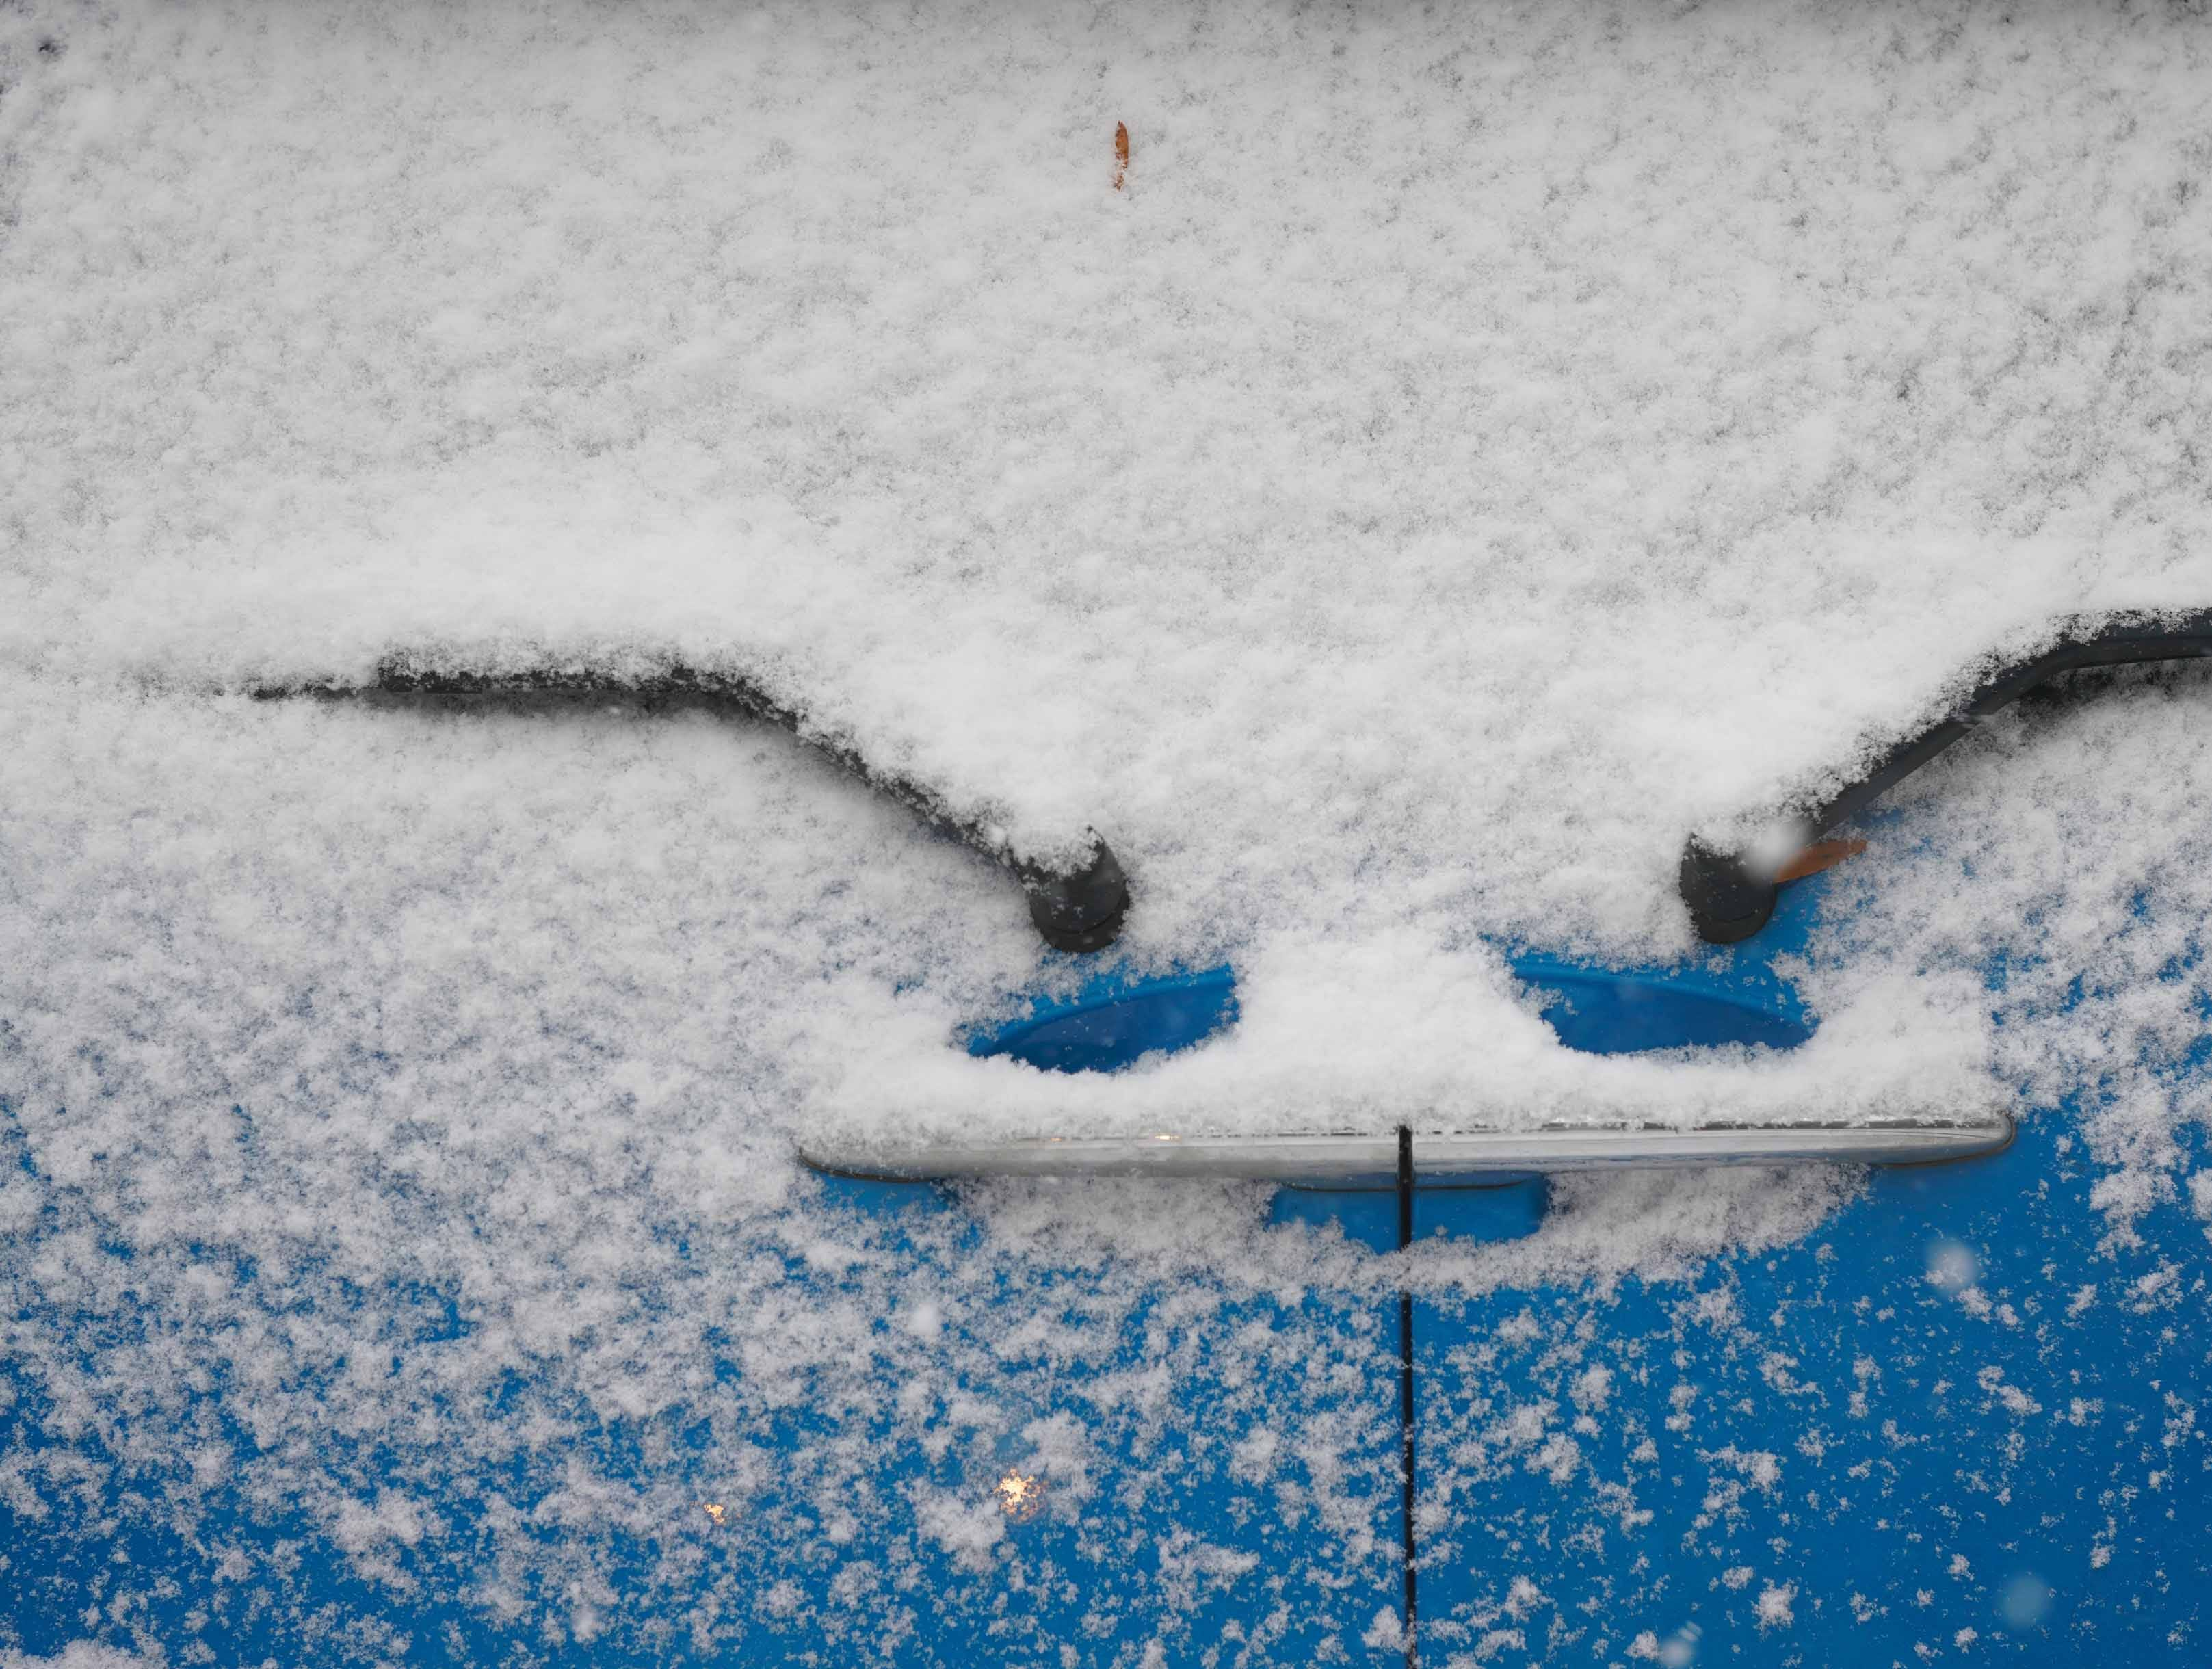 A Mini Cooper got a coating of snow in Old New Castle on Thursday morning.